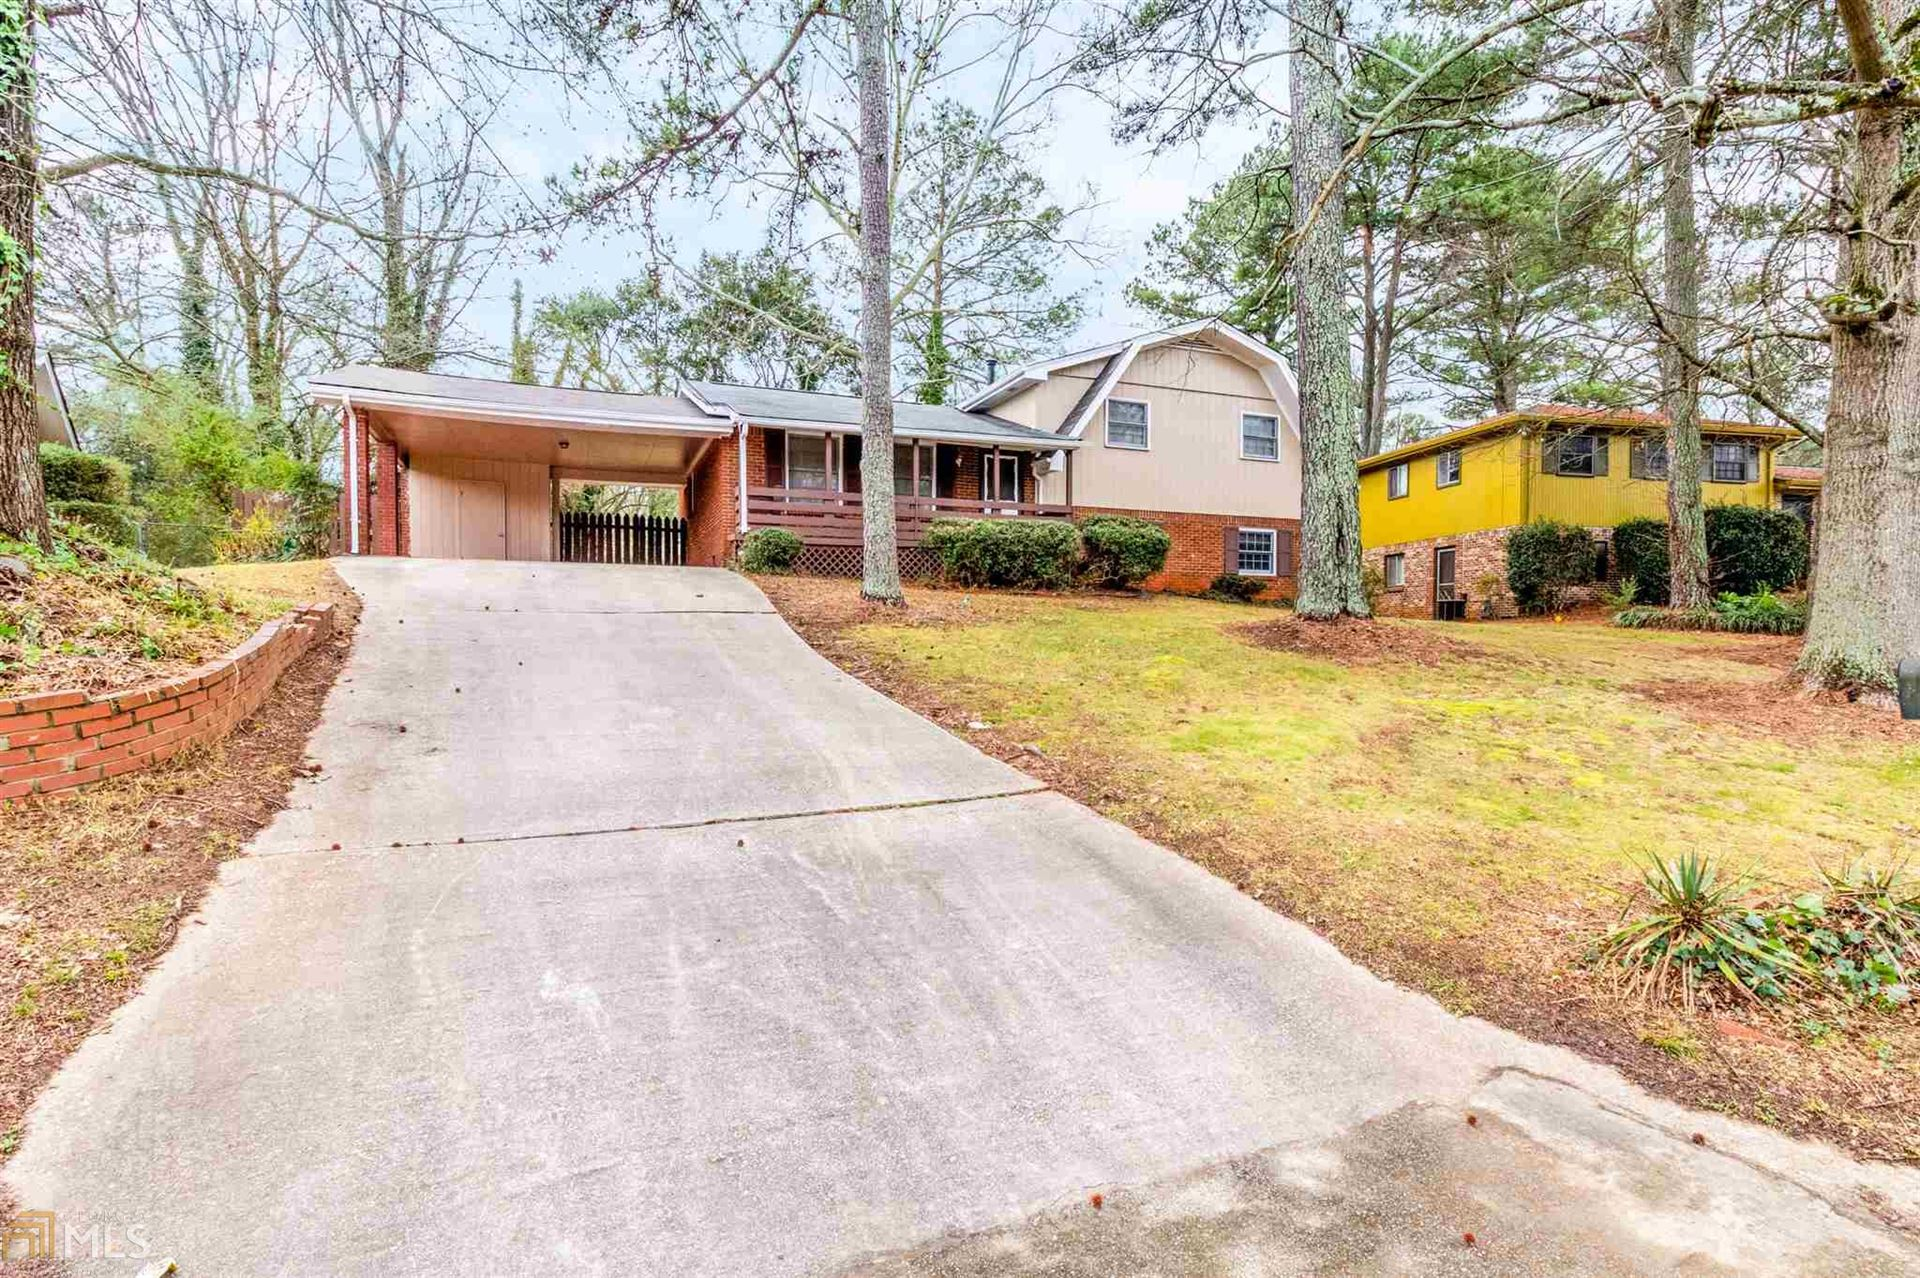 2114 Chevy Chase Ln, Decatur, GA 30032 - #: 8742947